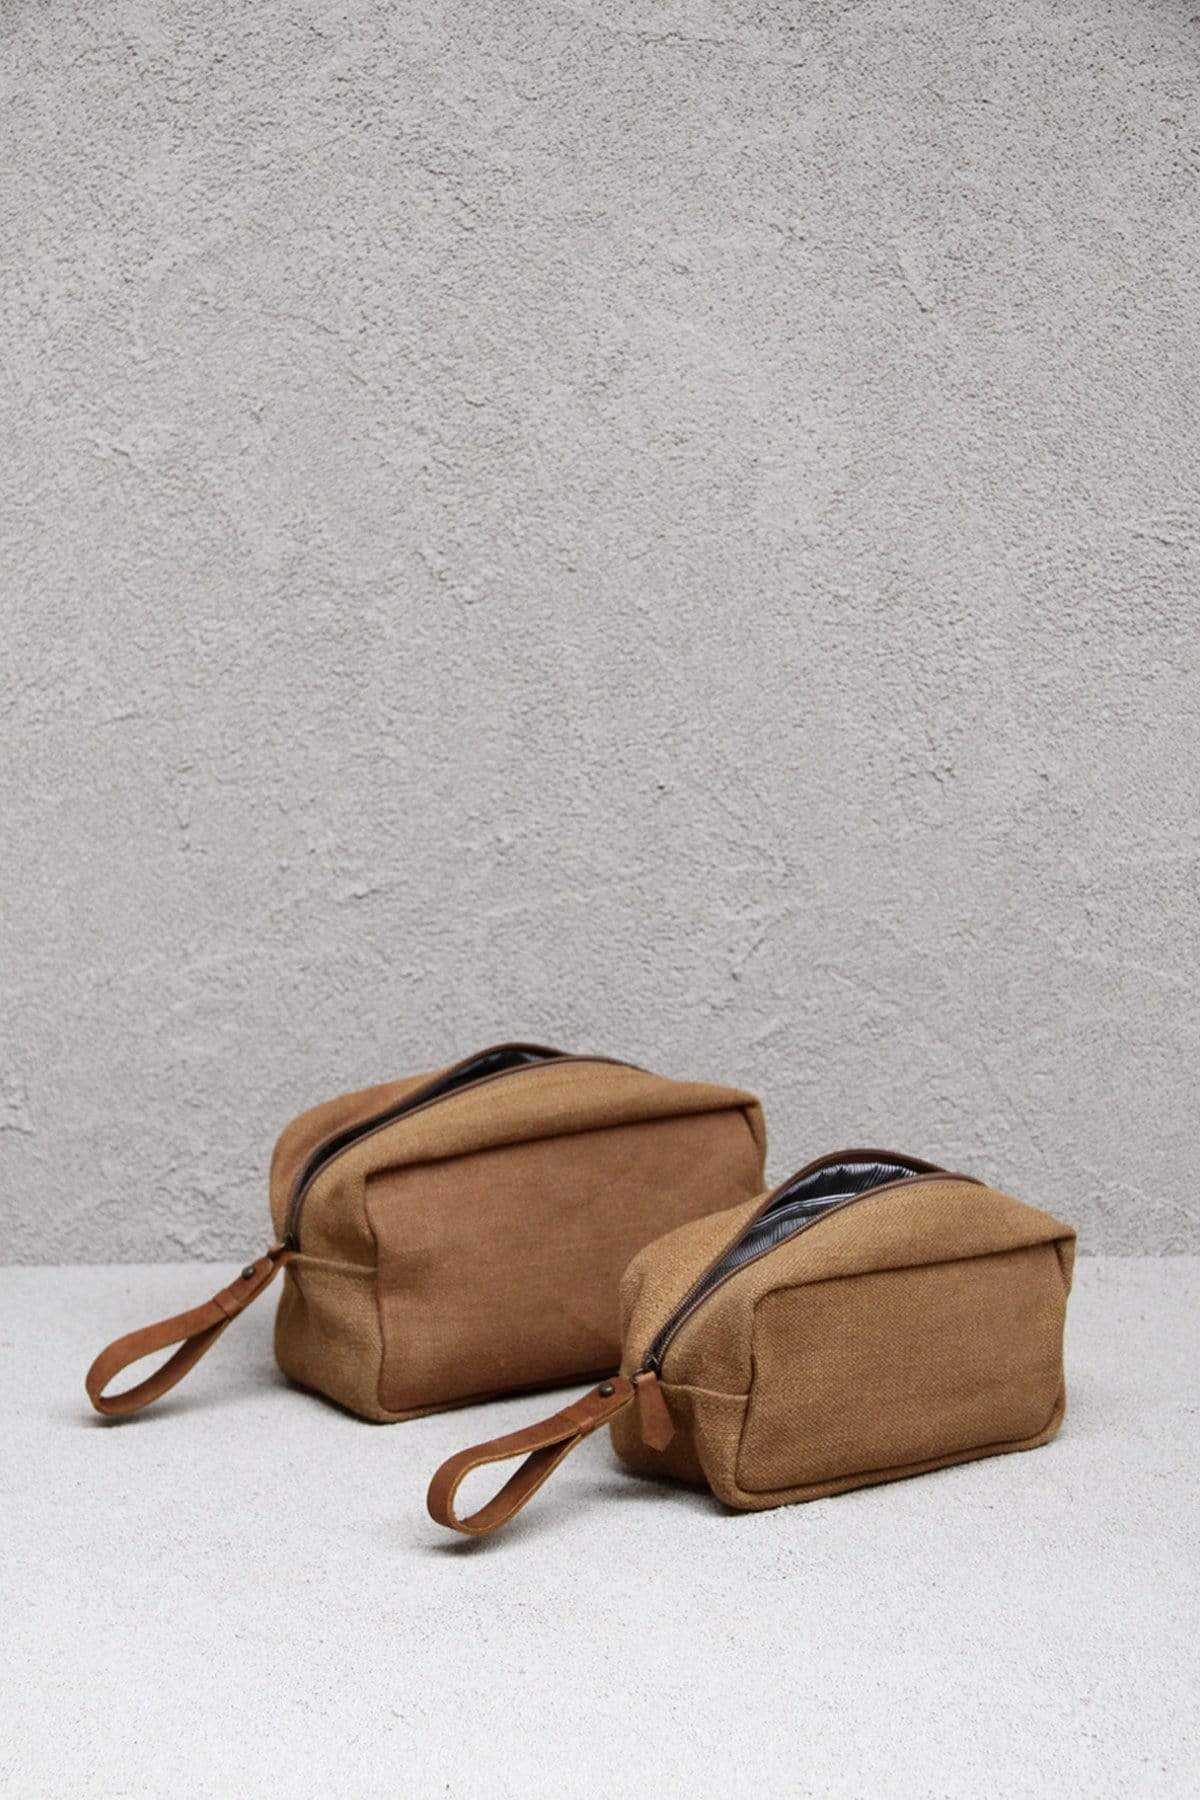 Dharma Door Fair Trade Gifts - Handmade Soft washed jute canvas zip-up toiletry bag - minimalist camel colour with brown leather accents